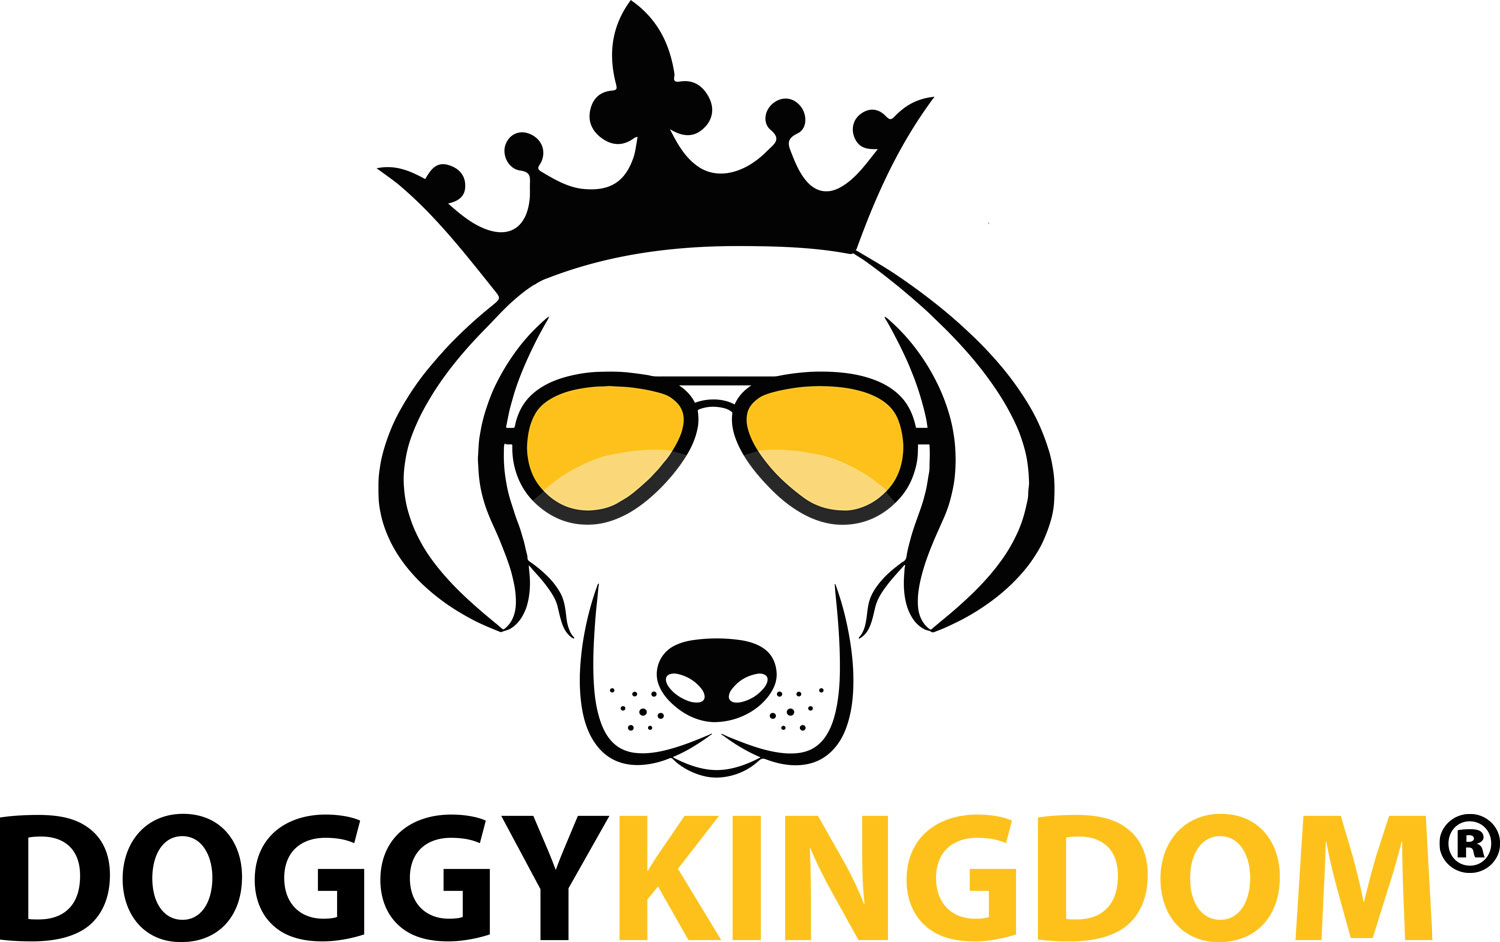 Doggykingdom Hits the Milestone: 500,000 Harnesses Sold Worldwide